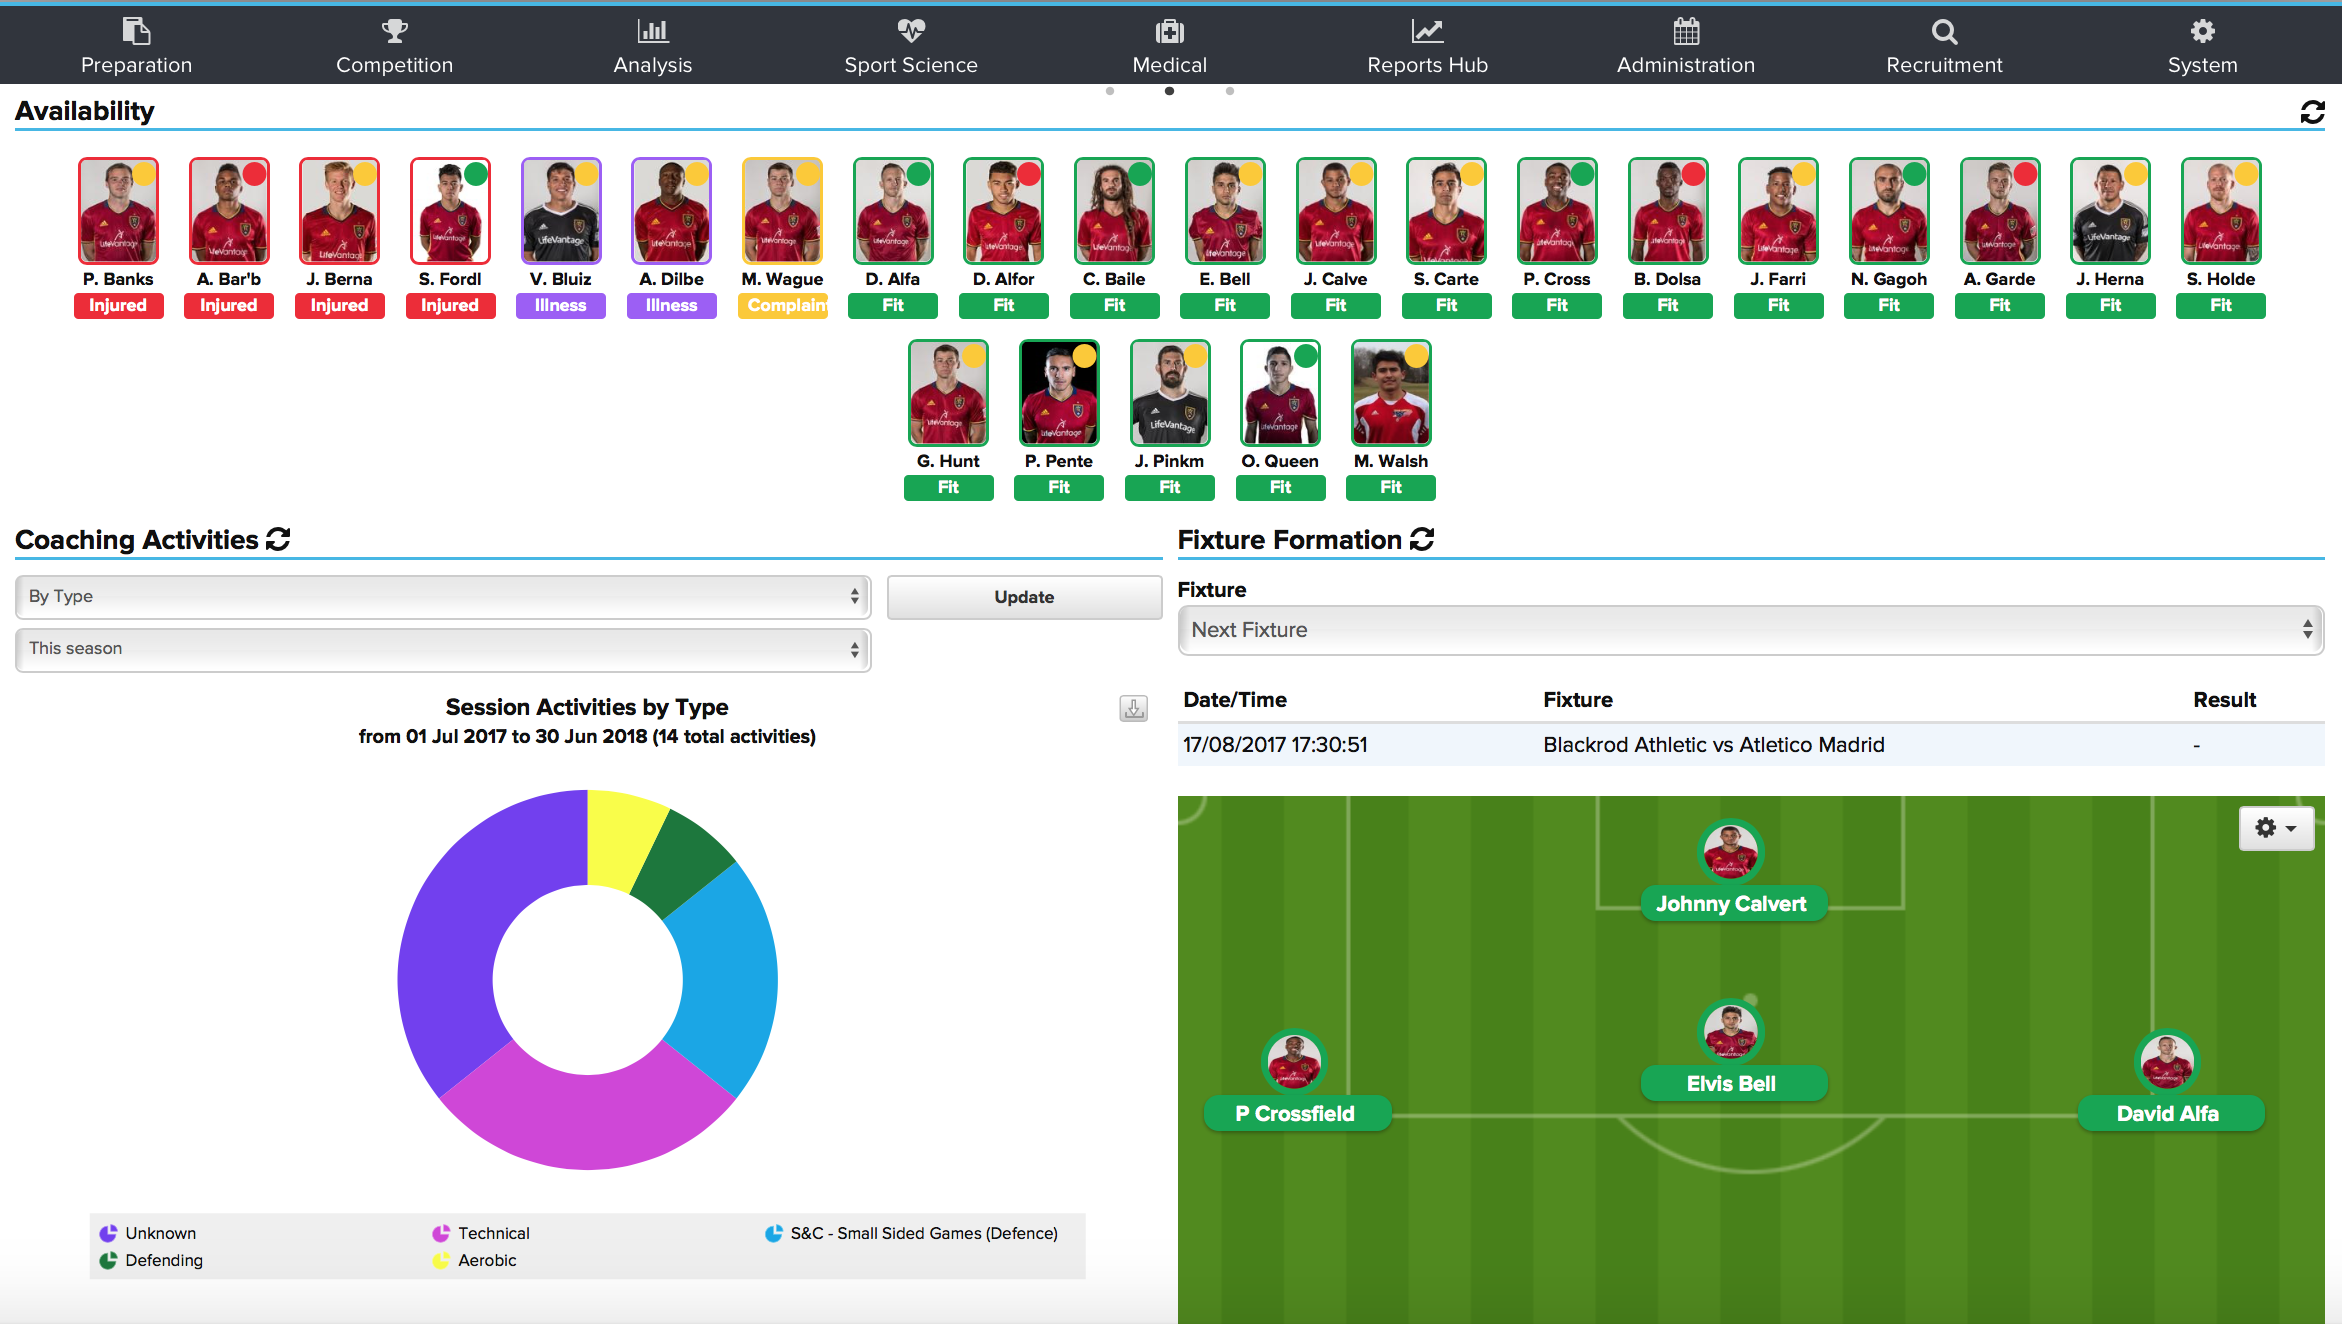 One tab allows managers to quickly check the availability of their players